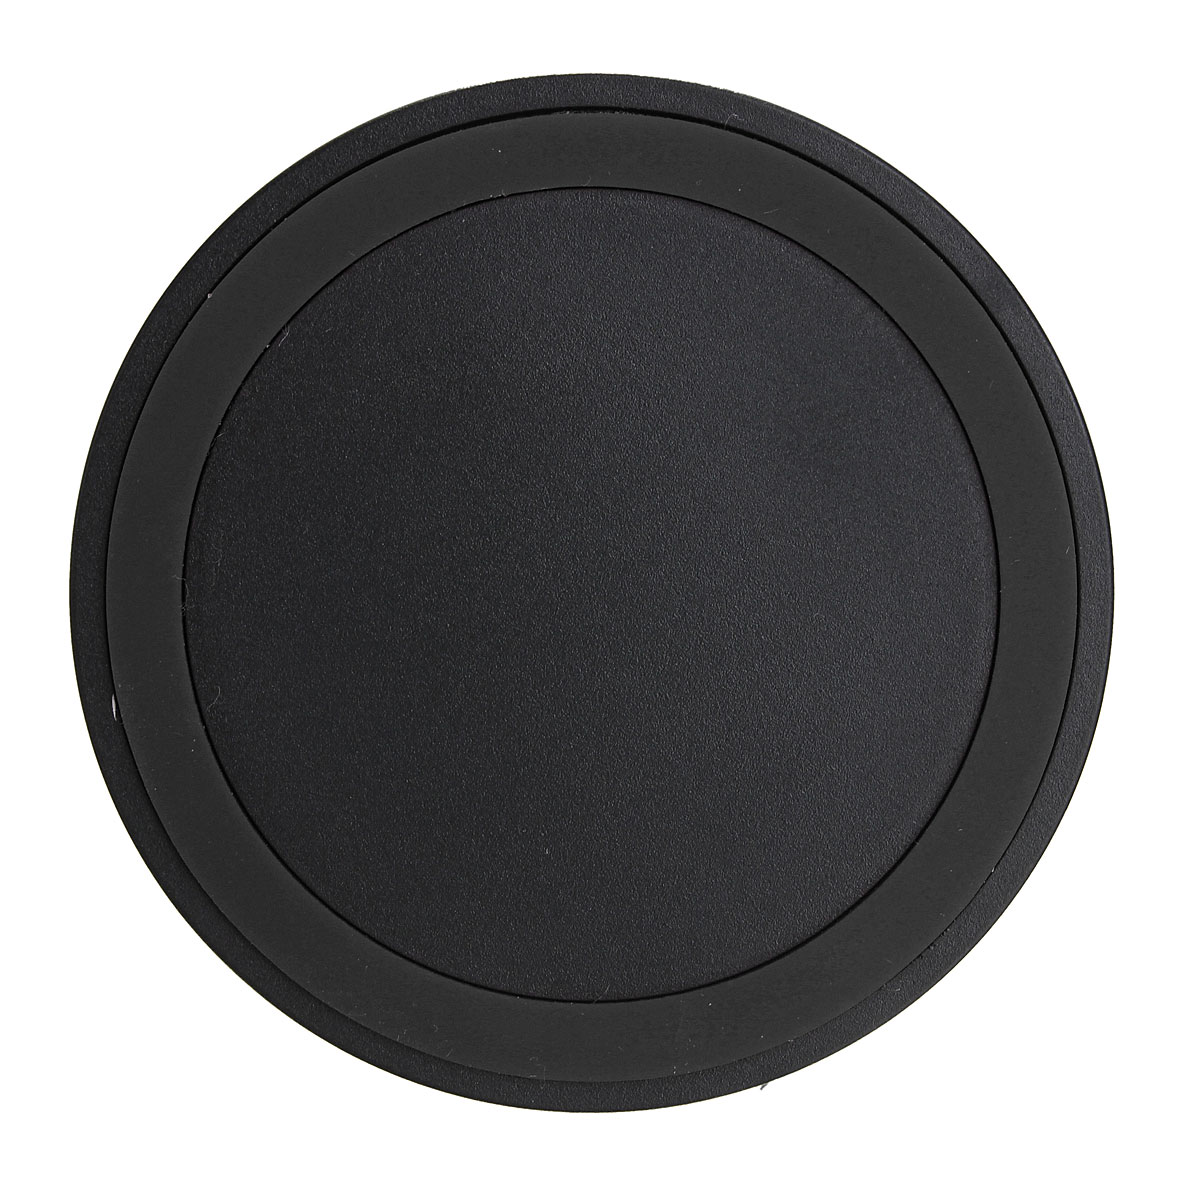 qi wireless charger pad handy ladeger t f r samsung iphone. Black Bedroom Furniture Sets. Home Design Ideas